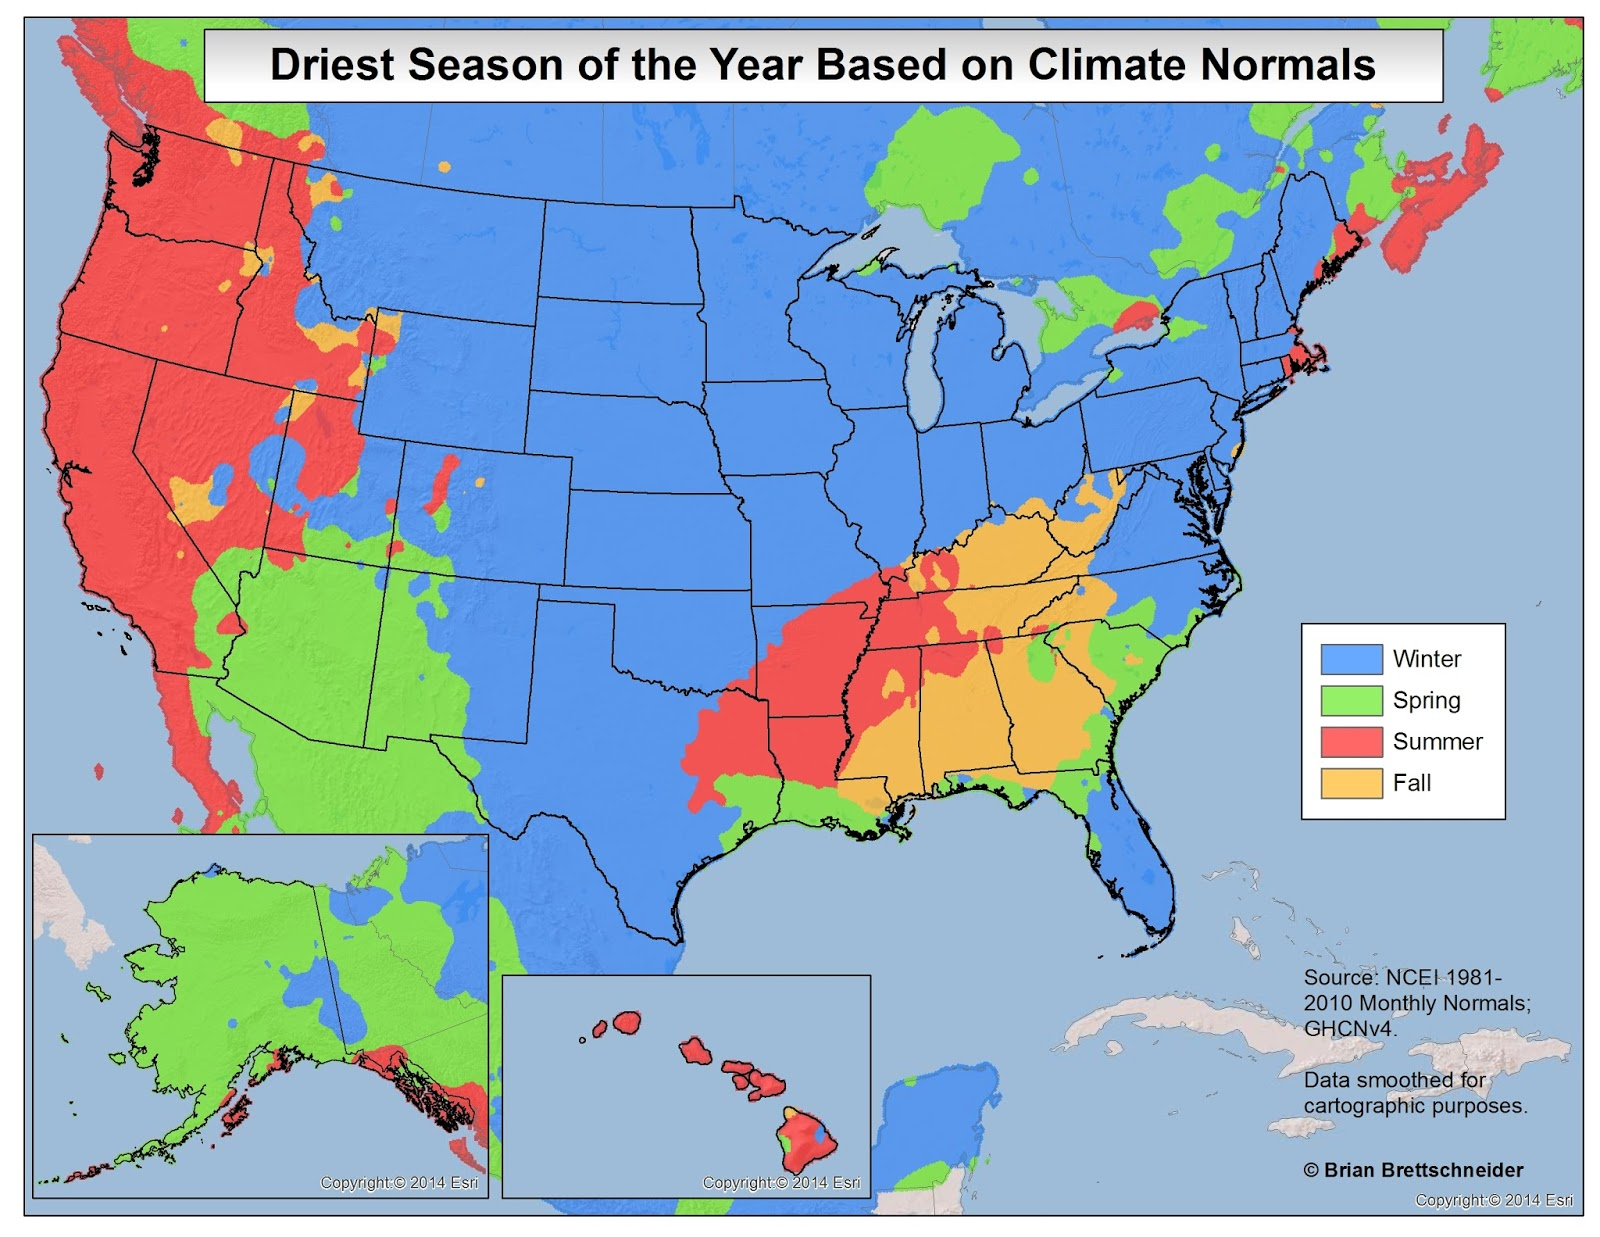 Driest Season of the year based on climate normals